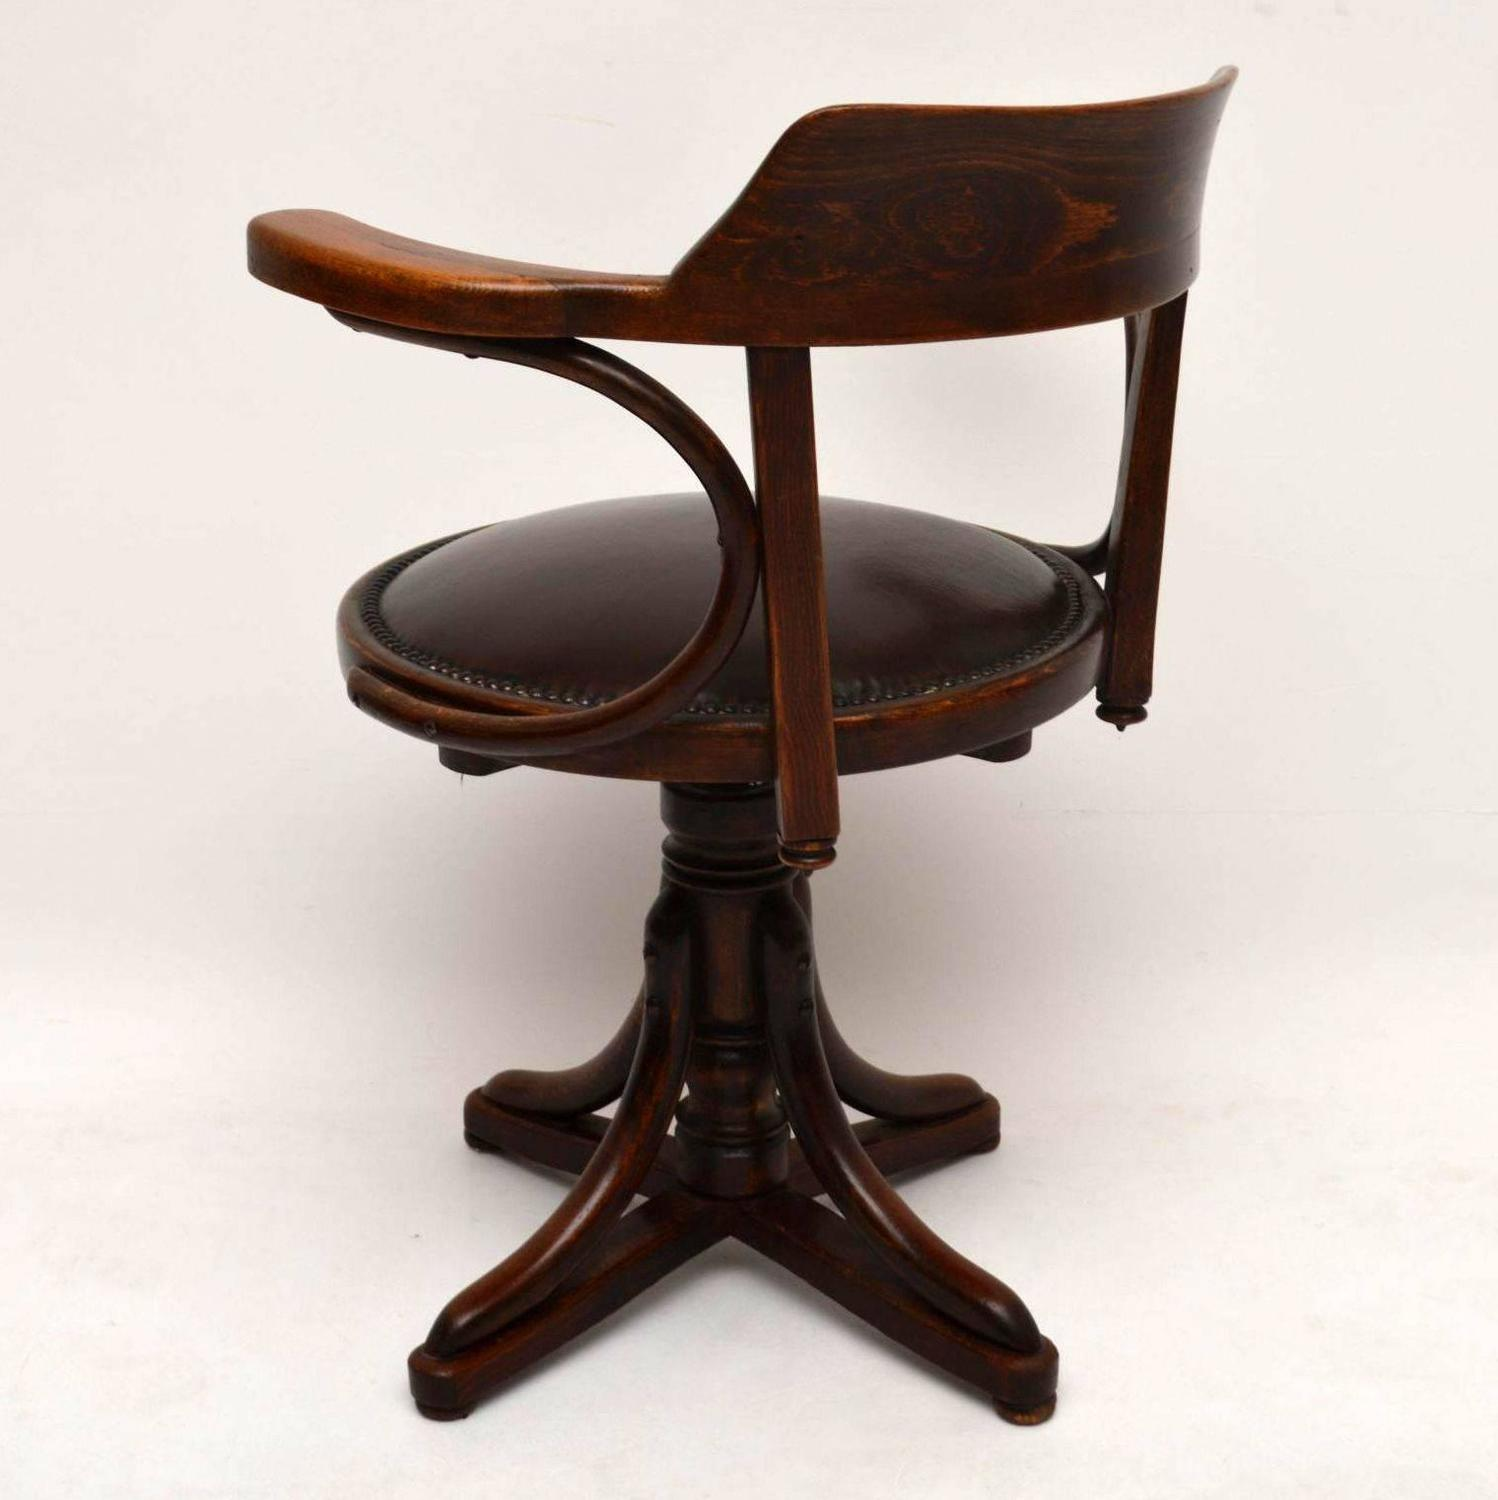 Antique Bentwood And Leather Desk Chair By Thonet At 1stdibs